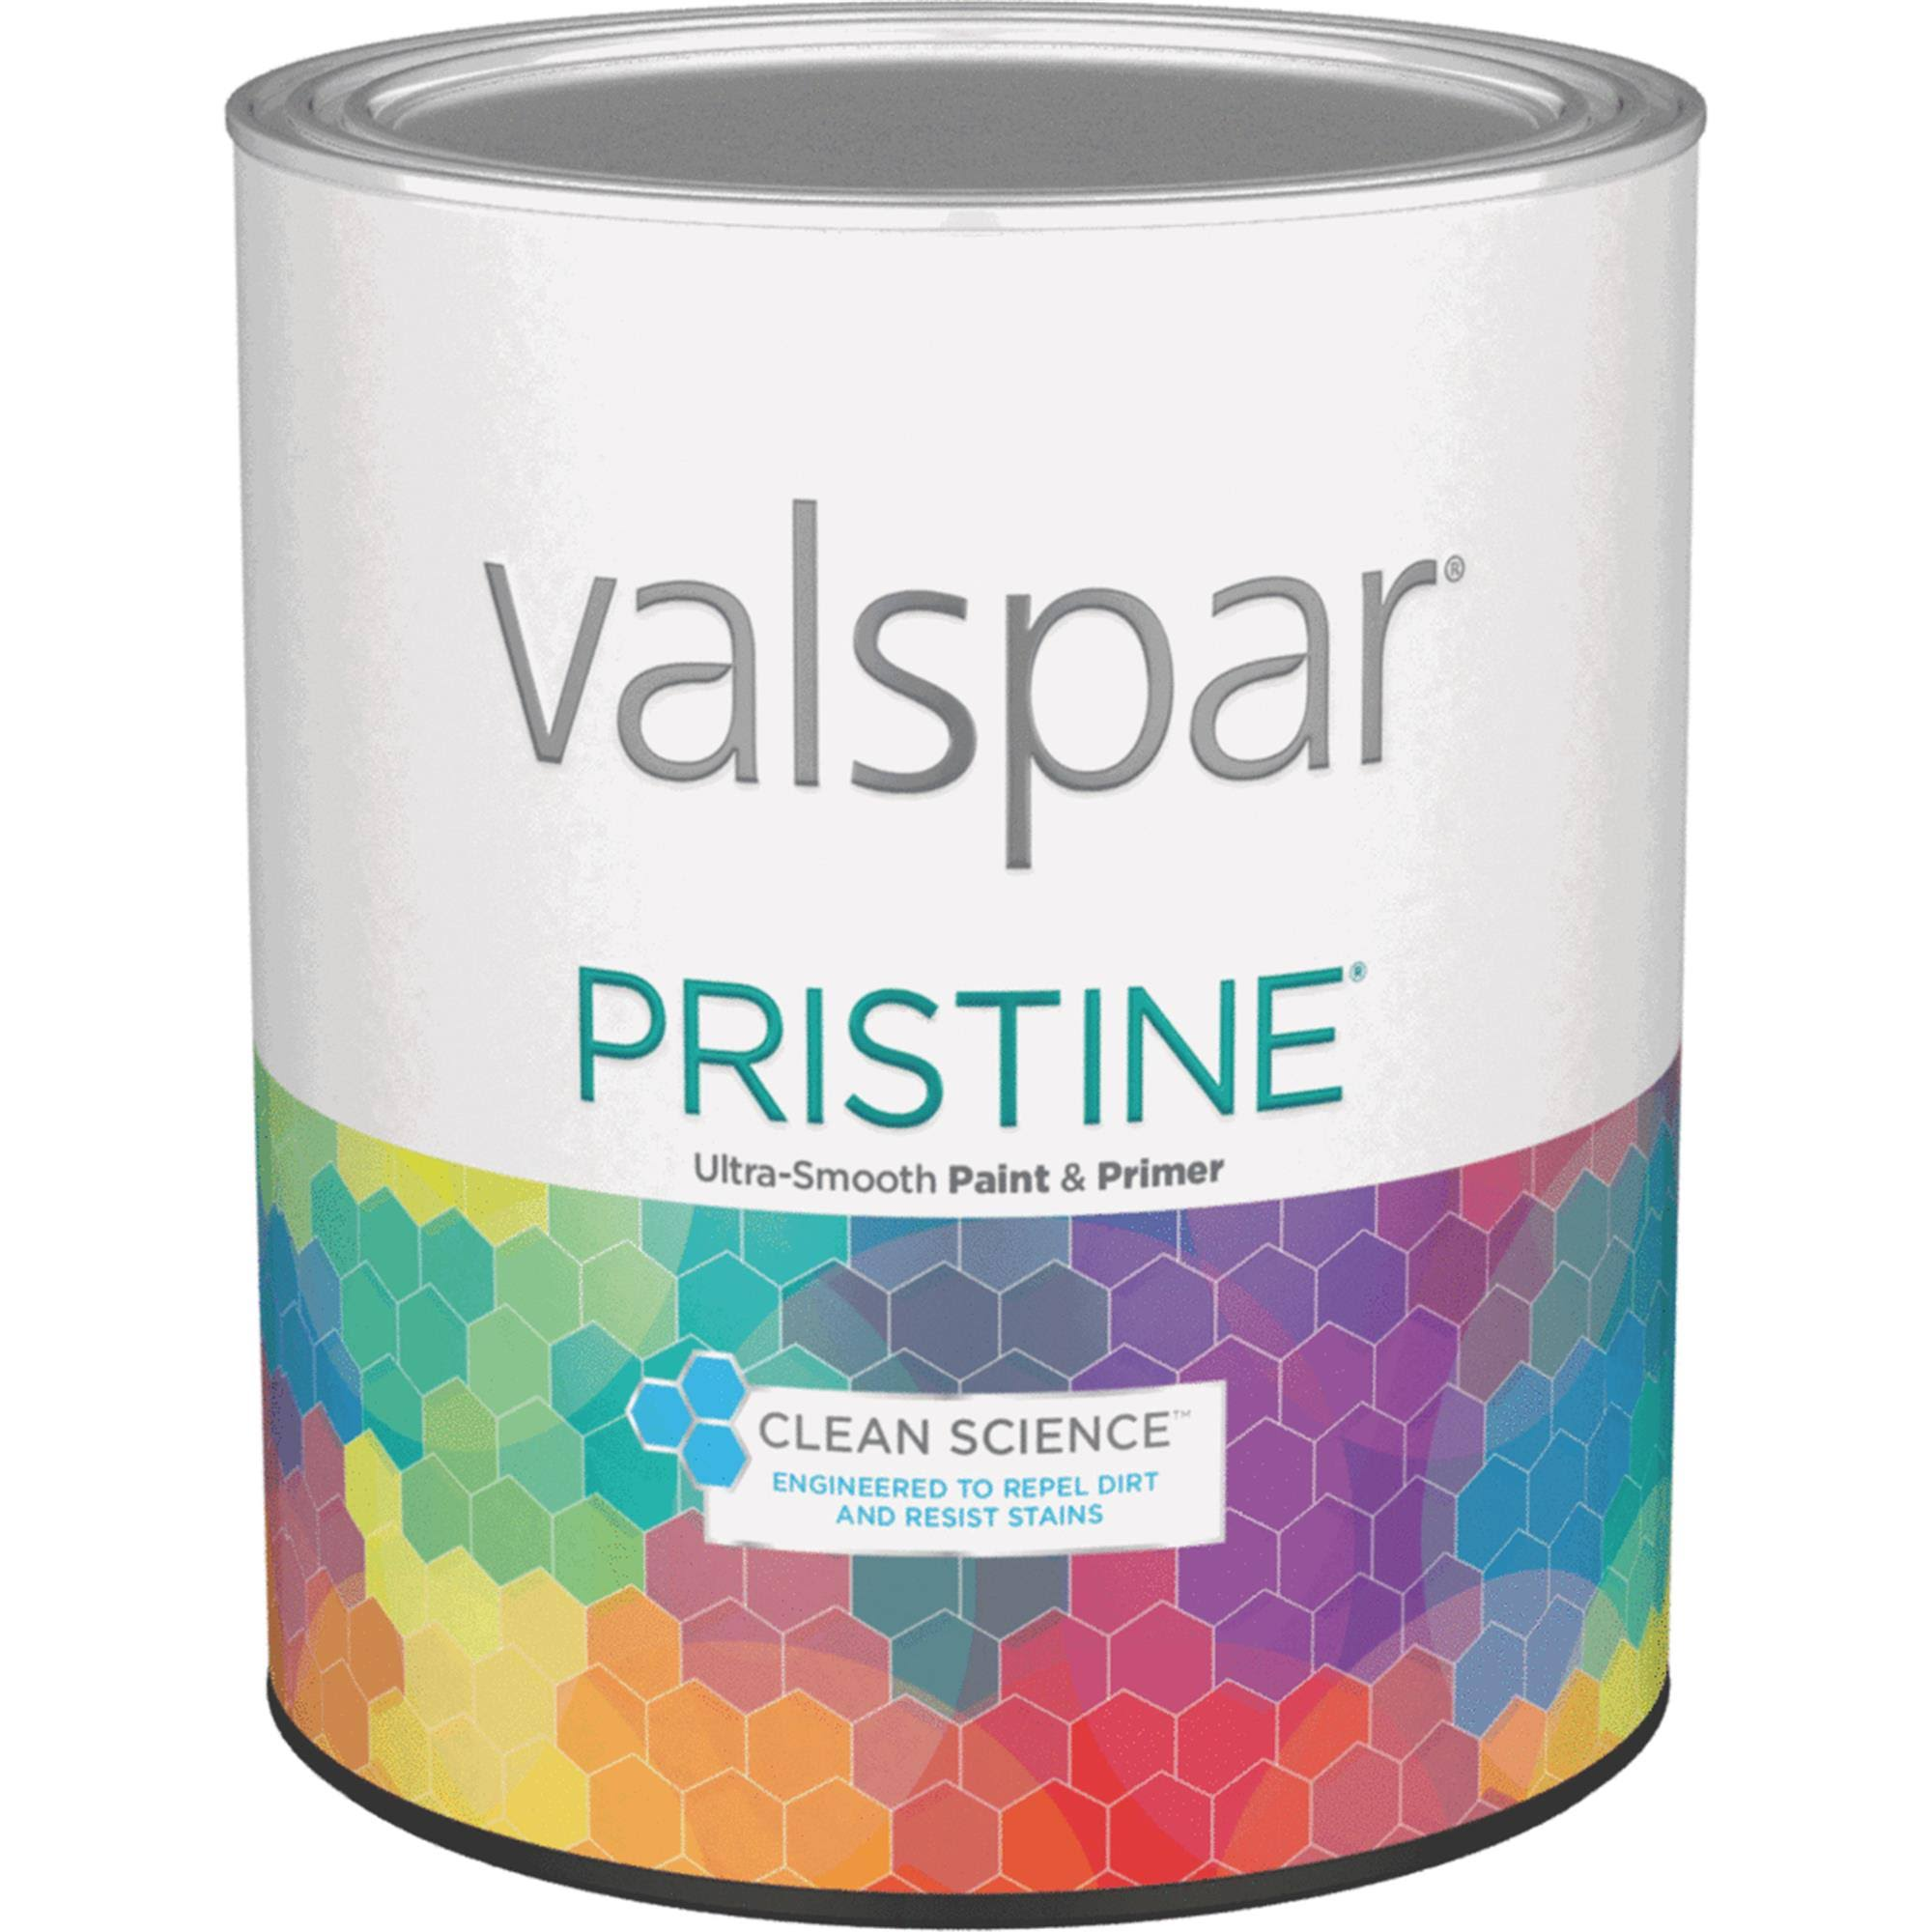 Valspar Pristine Acrylic Paint and Primer Satin Interior Wall Paint - Tint Base, 1qt